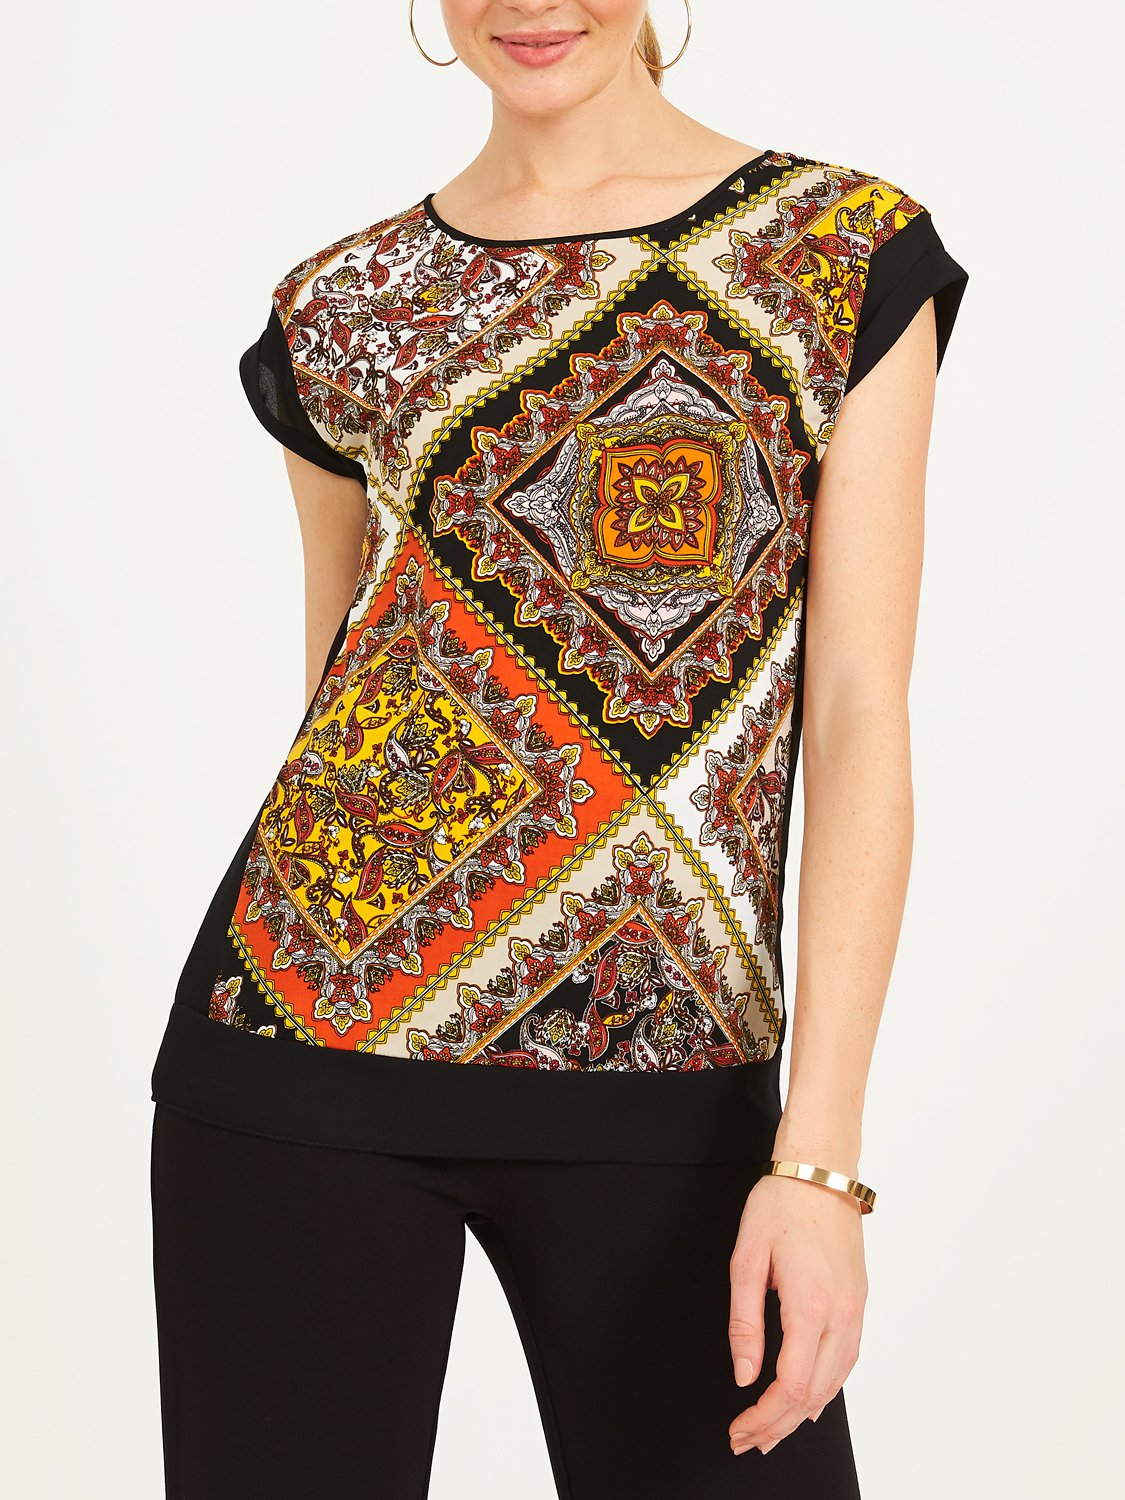 Copy of Patchwork Print Chiffon Top